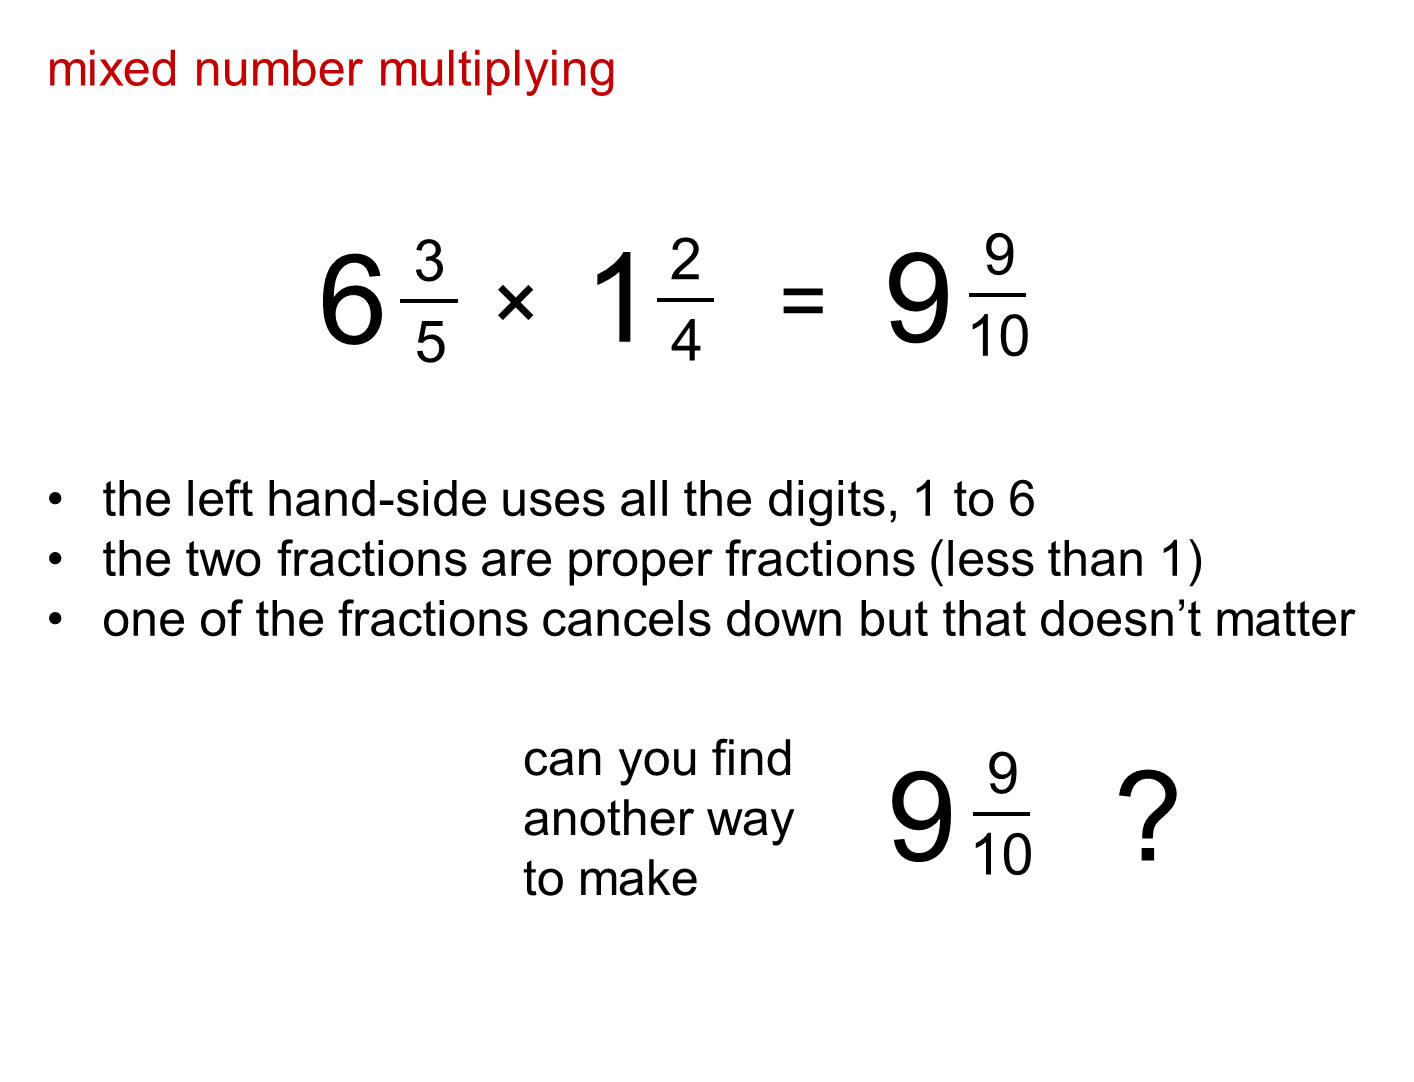 worksheet How Do You Multiply Mixed Numbers median don steward mathematics teaching multiplying mixed numbers numbers